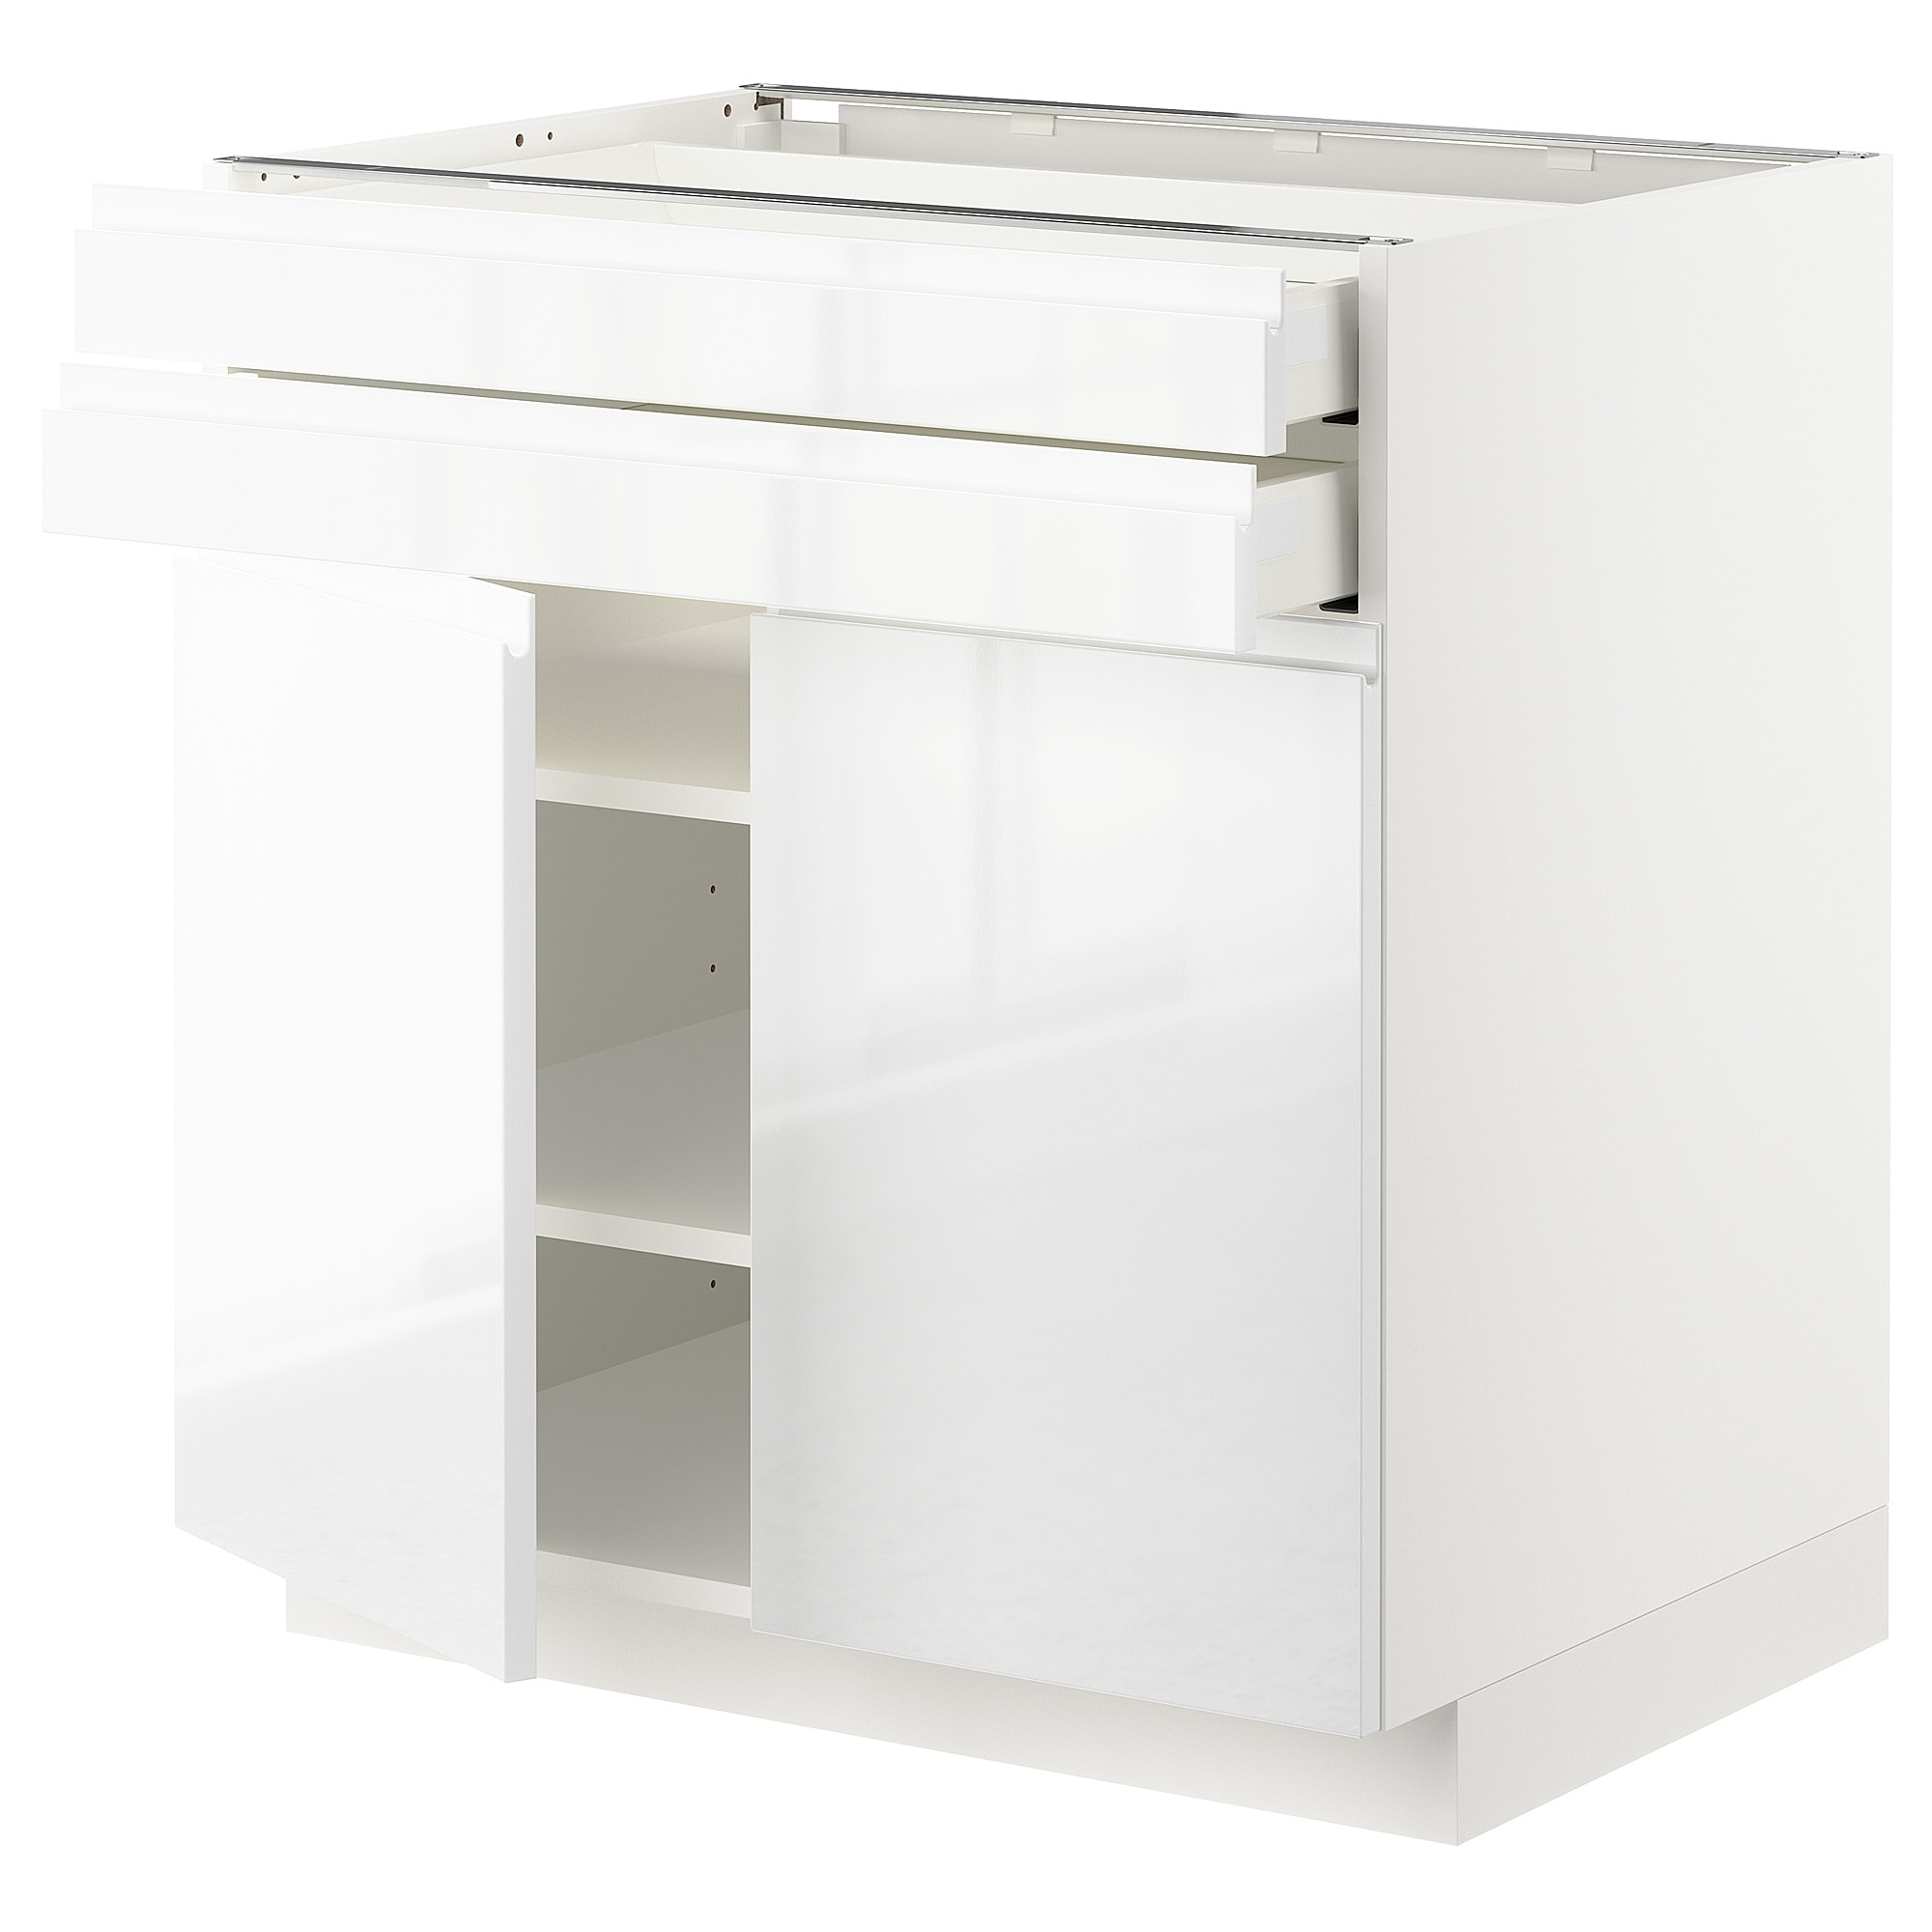 Metod/maximera Base Cabinet W 2 Doors/2 Drawers White/voxtorp High regarding White Wash 4-Door Galvanized Sideboards (Image 19 of 30)